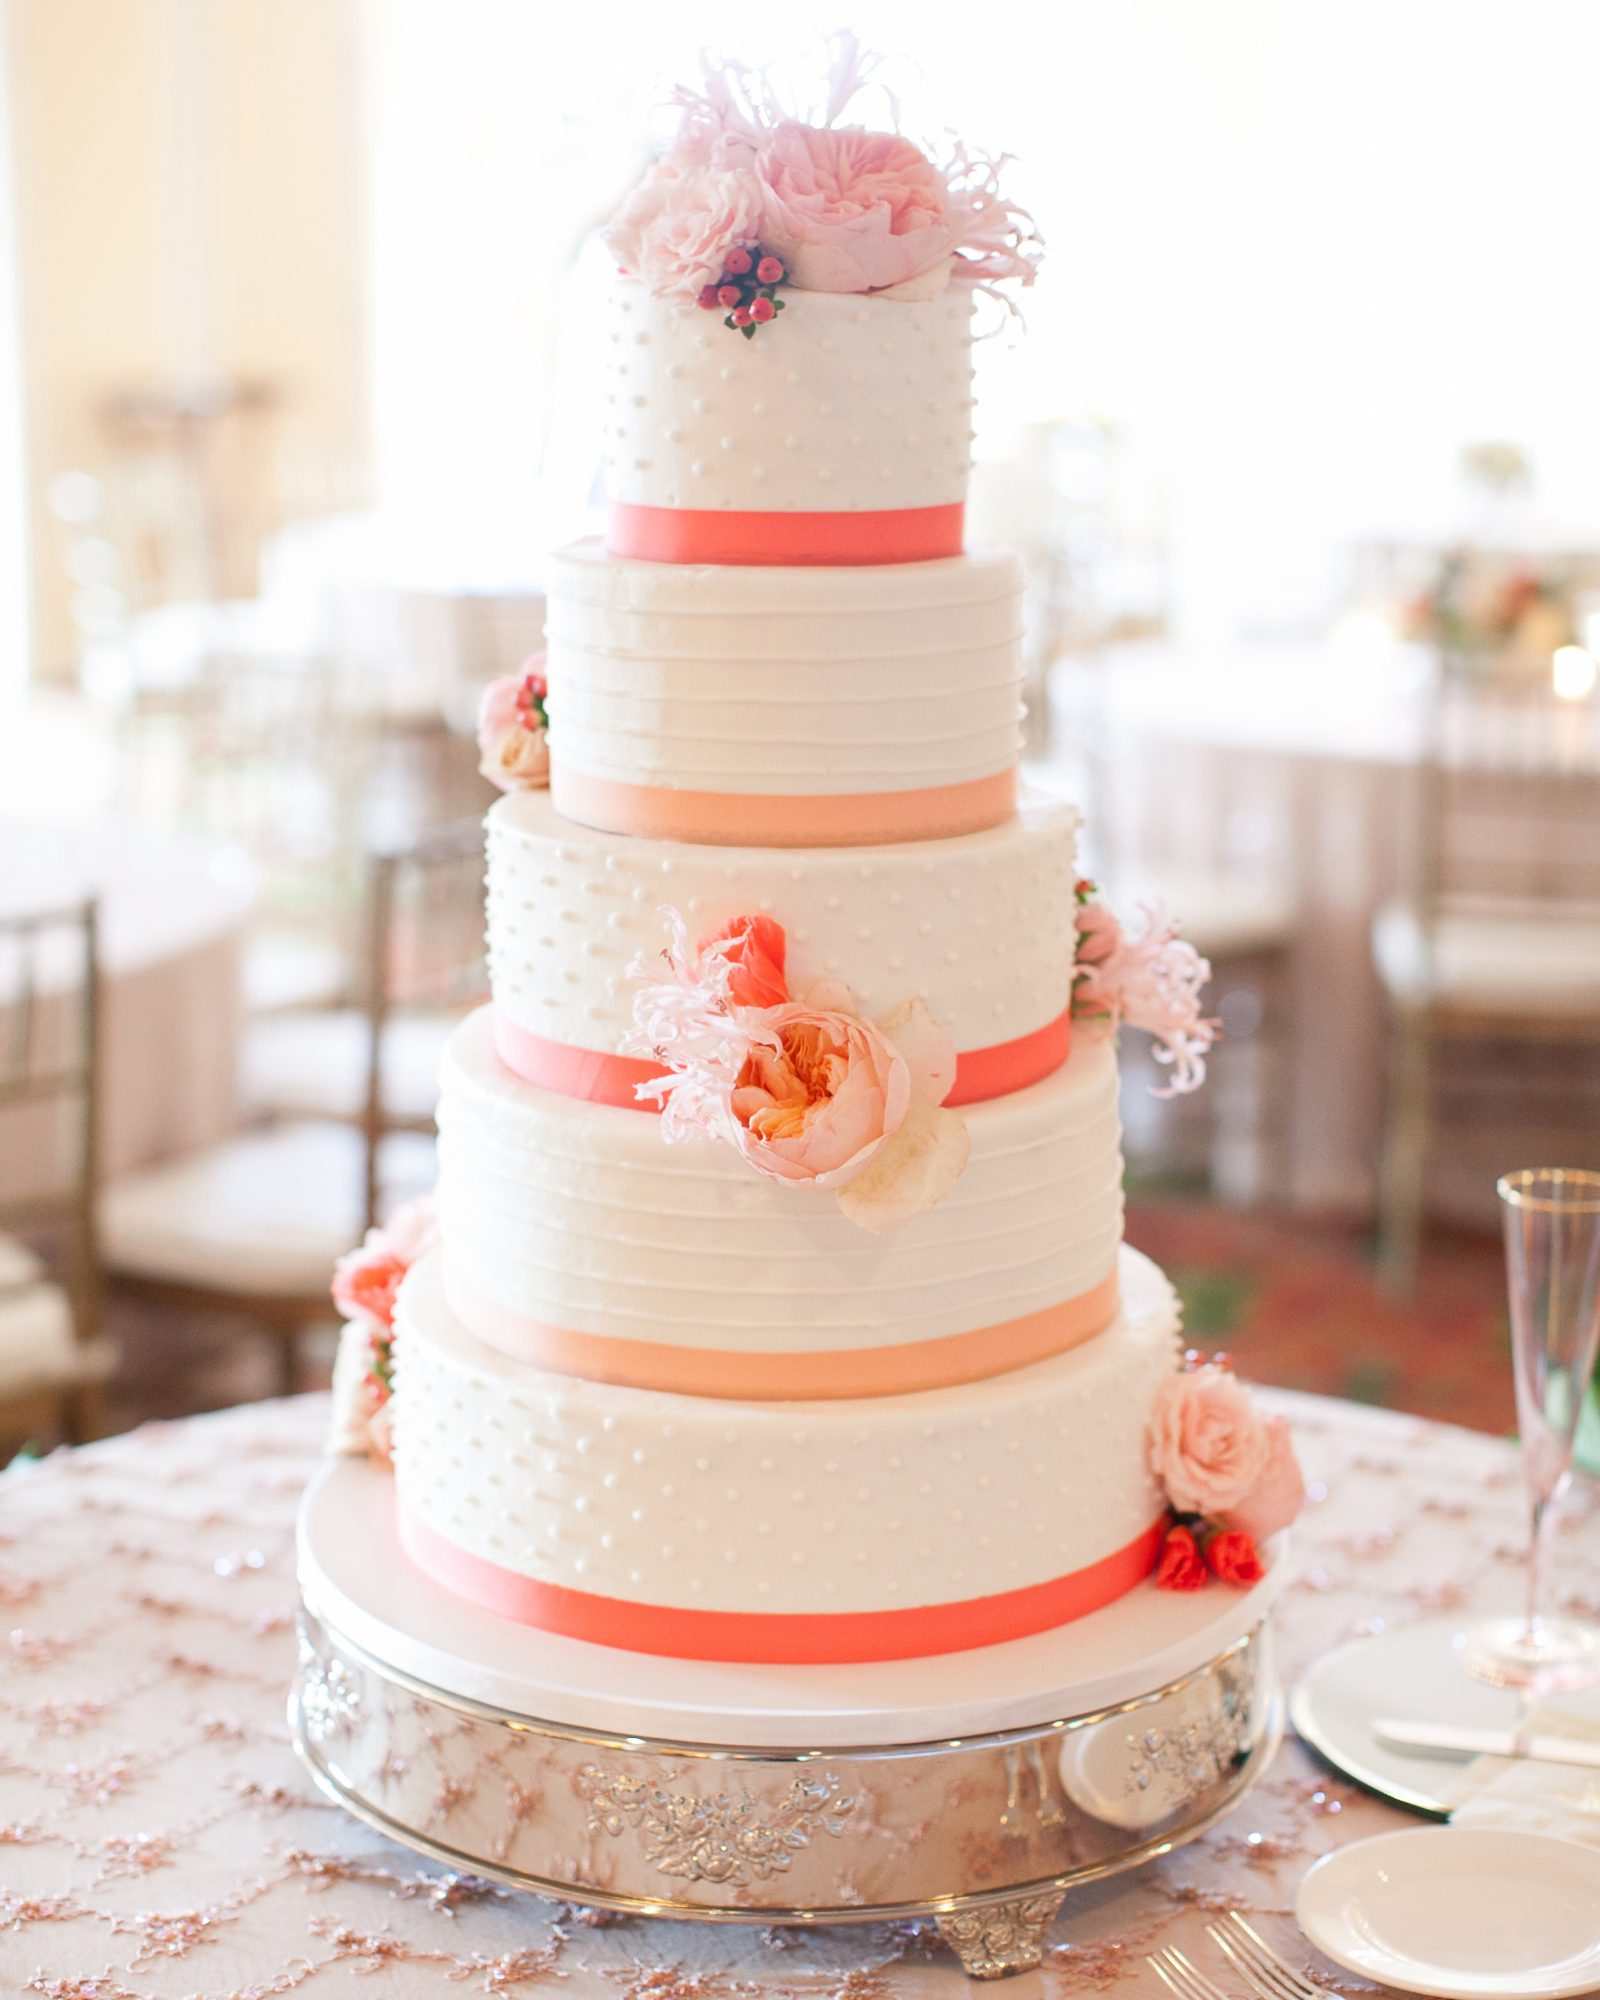 molly-patrick-wedding-cake-3524-s111760-0115.jpg